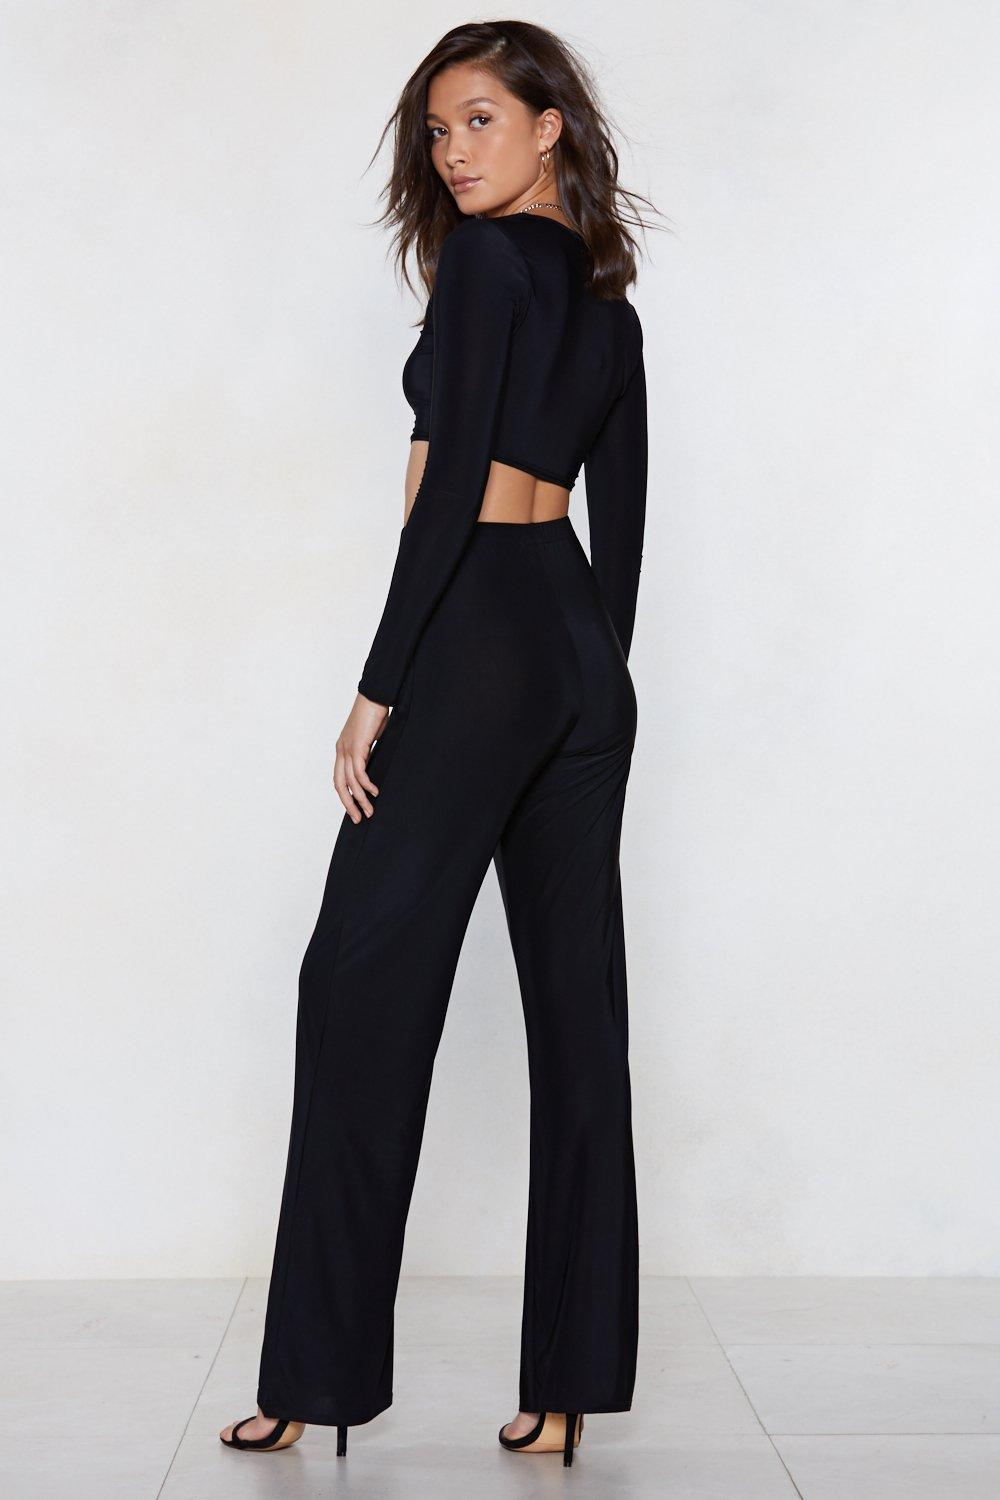 ca62d412ac83a Square With Me Crop Top and Wide-Leg Pants Set | Shop Clothes at ...